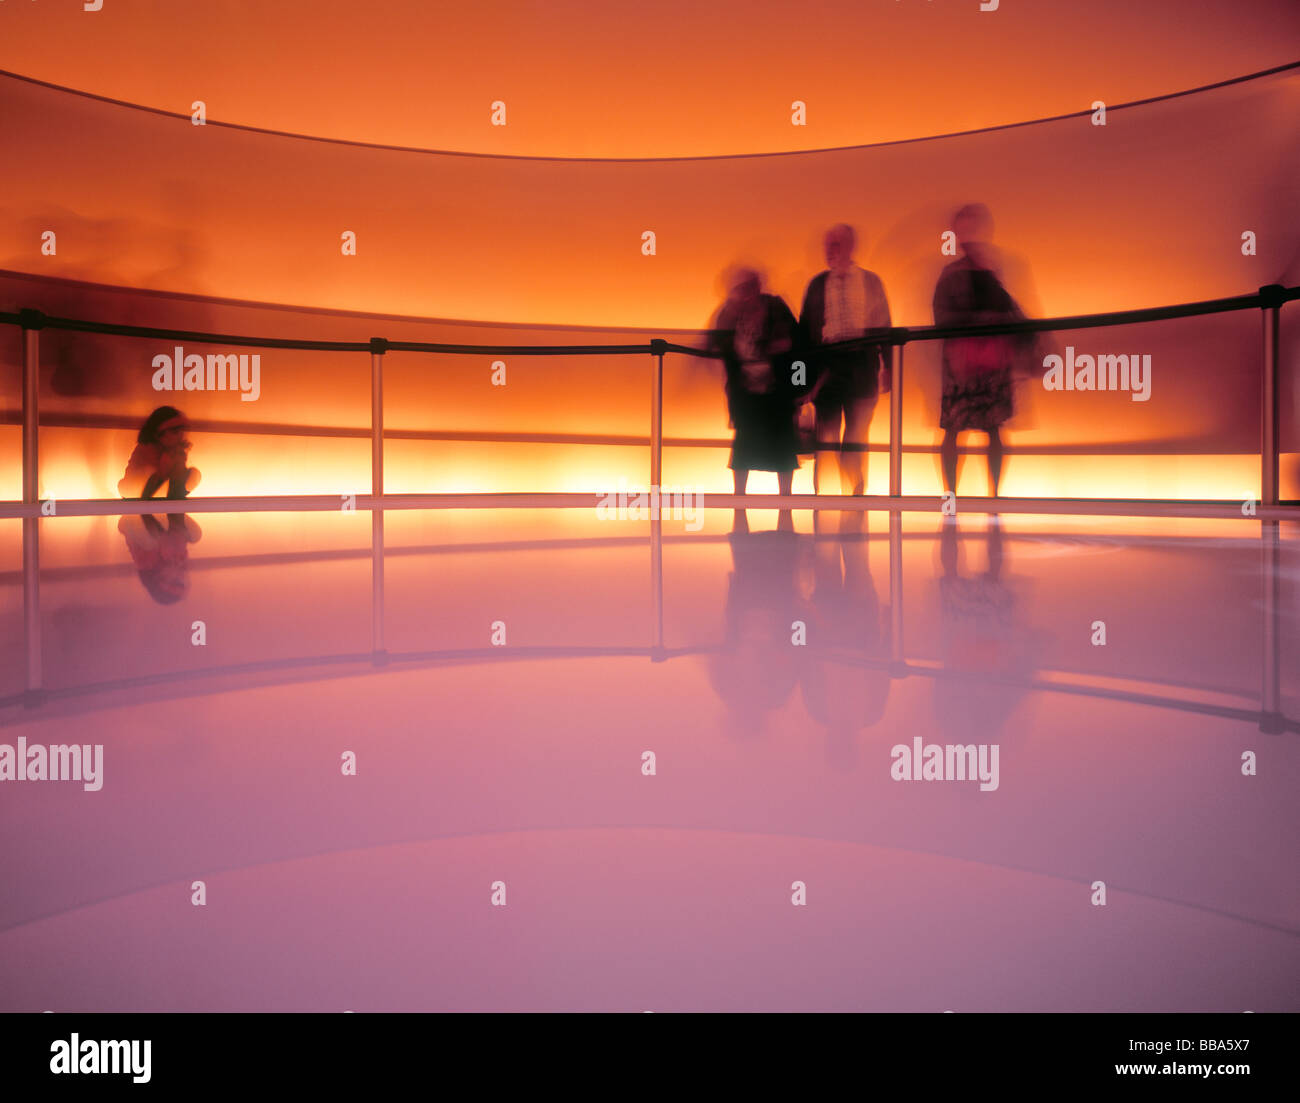 People watching pavilion at the Water Expo (long exposure), Zaragoza, Spain. - Stock Image